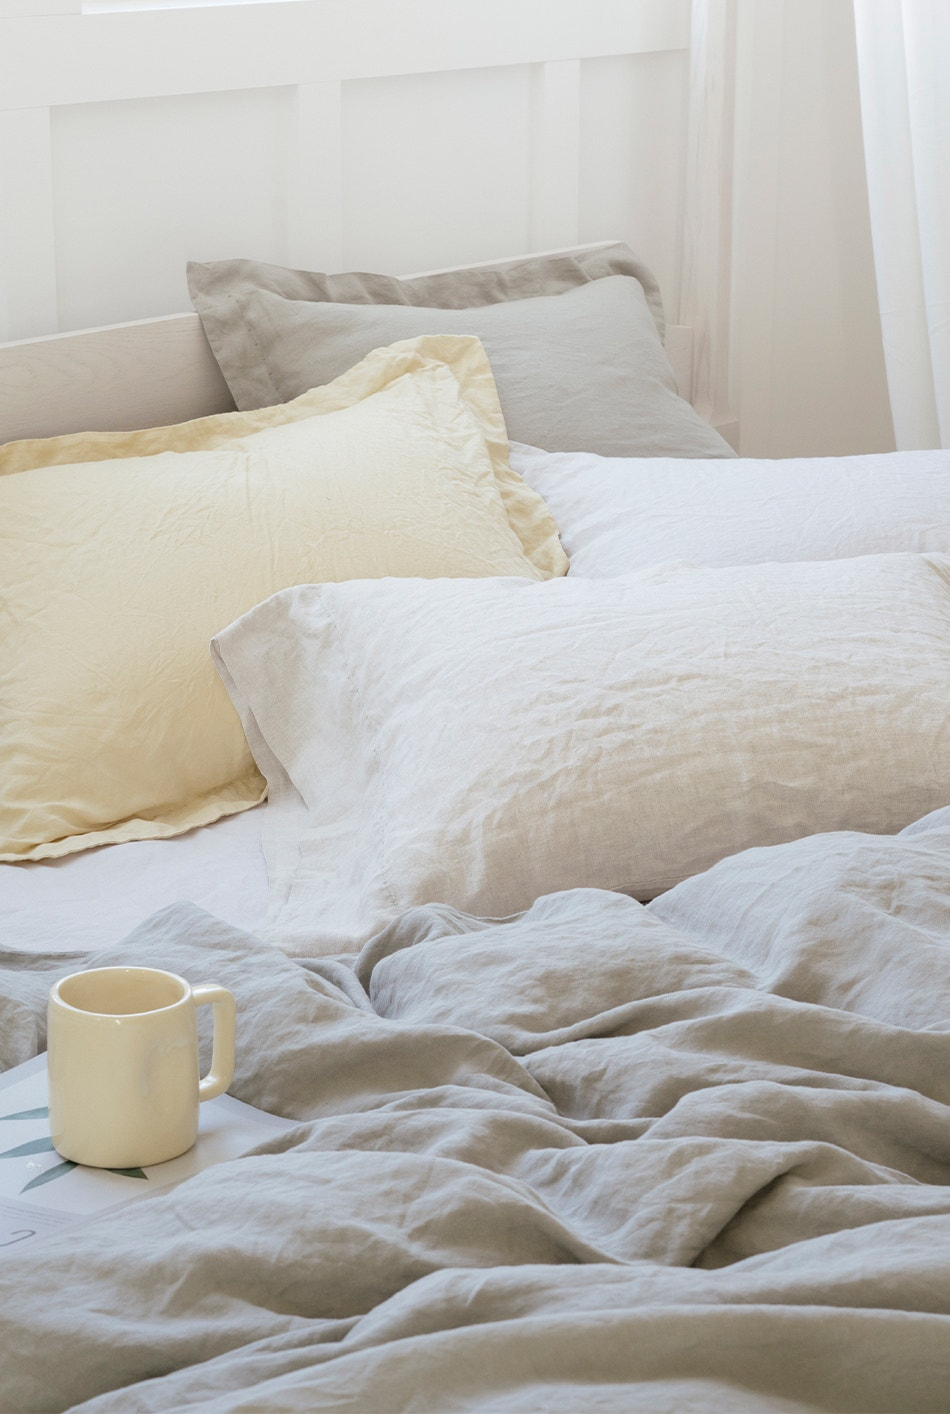 Organic linen sheets and shams on a bed